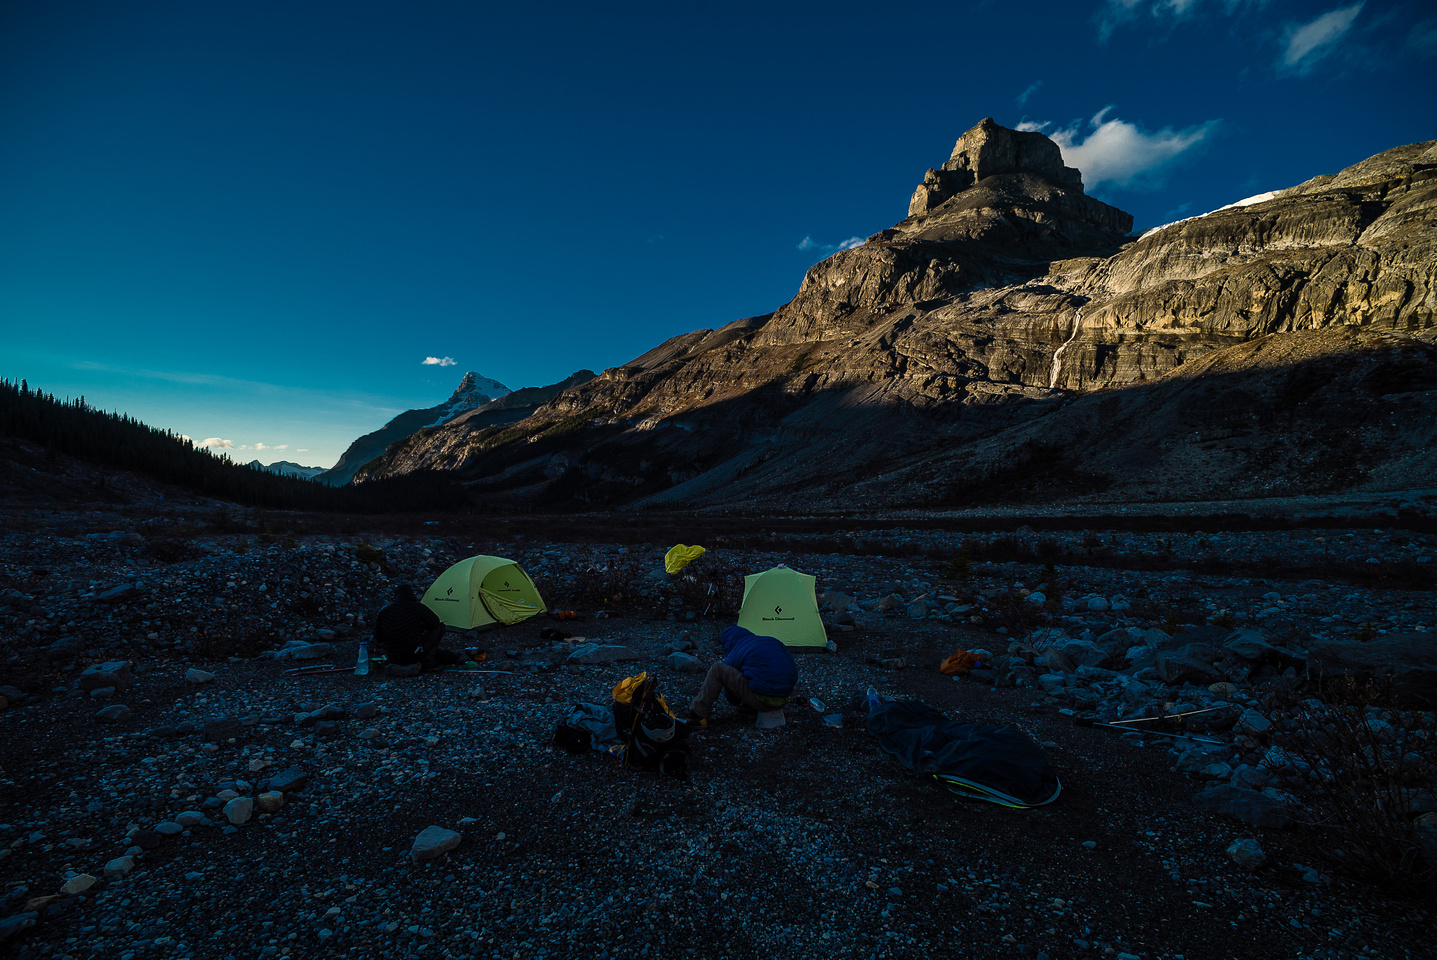 Feels so good to be back at our sublime bivy camp. Bryce looms far in the distance down valley.